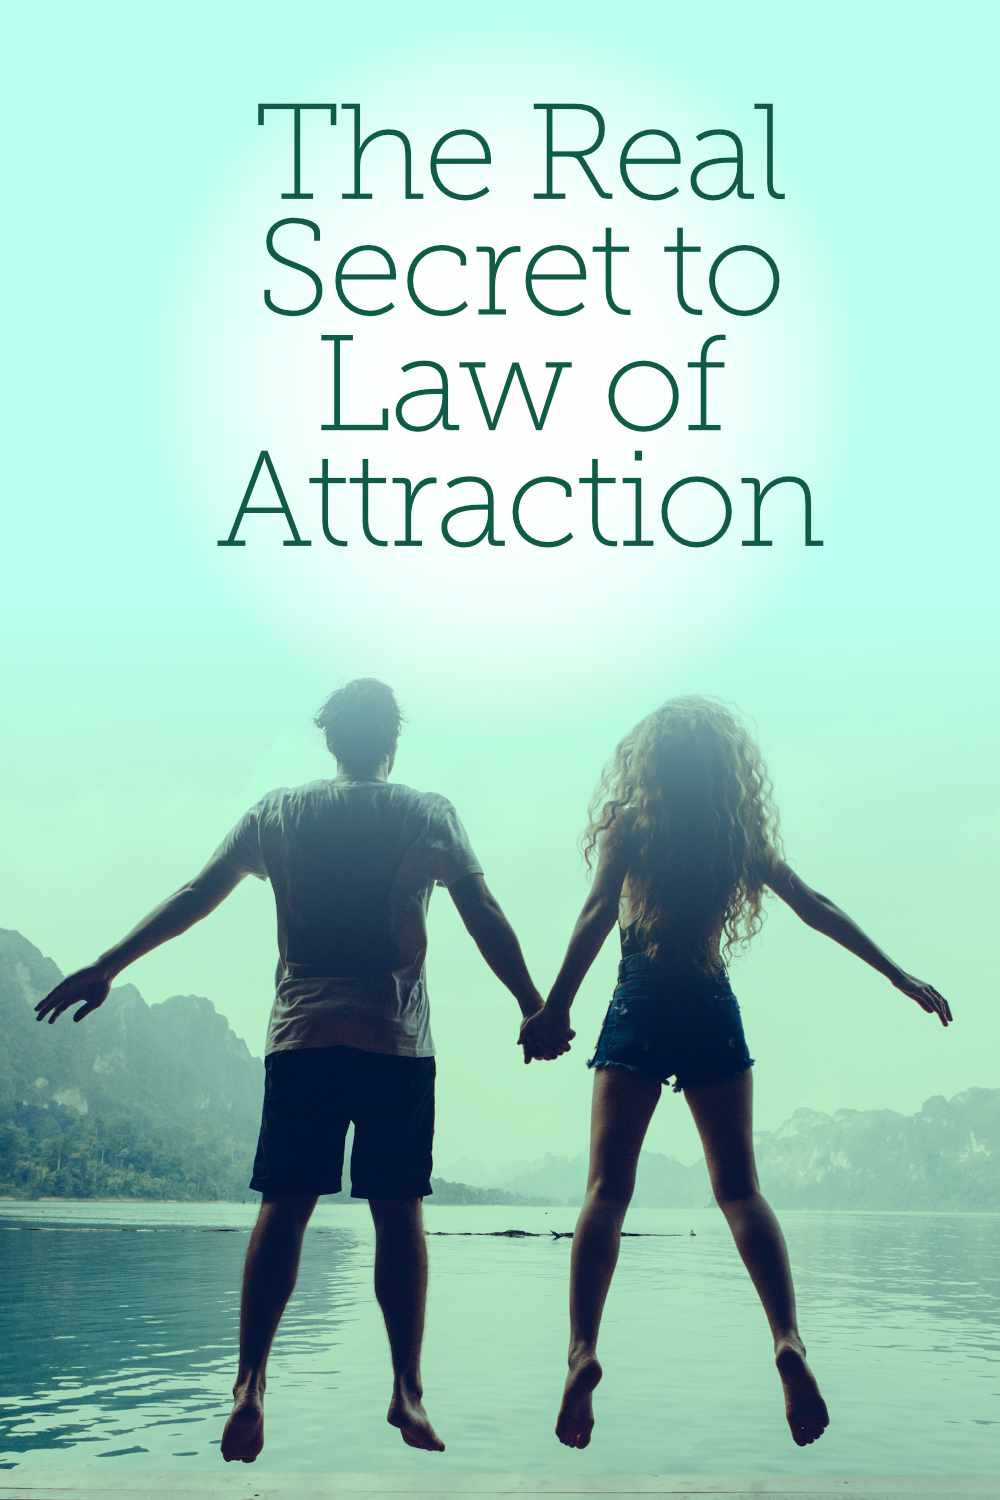 The Real Secret to the Law of Attraction